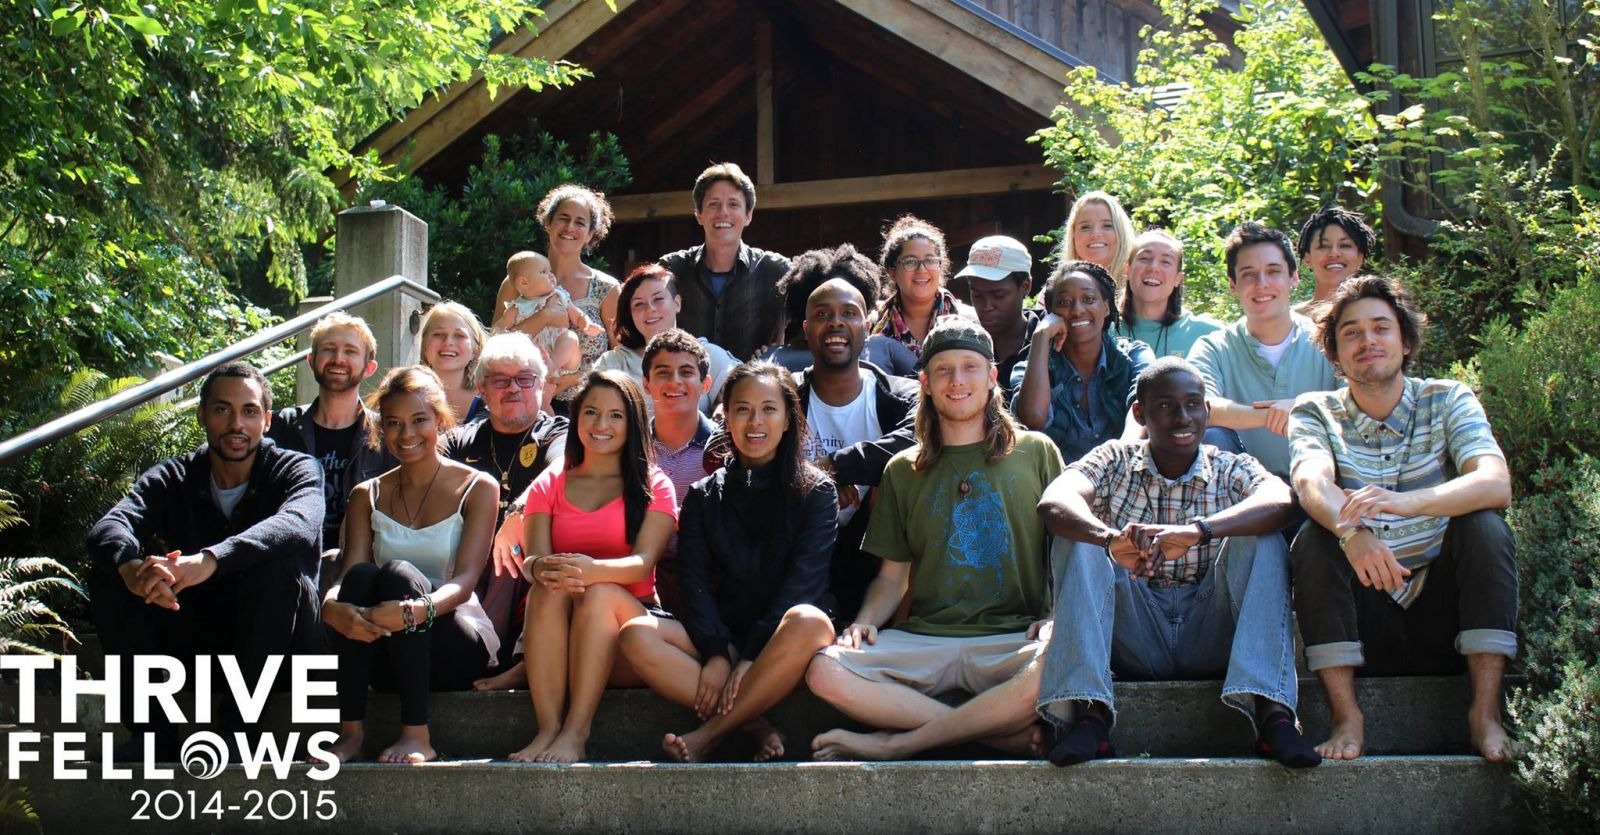 Thrive Fellows 2014-2015